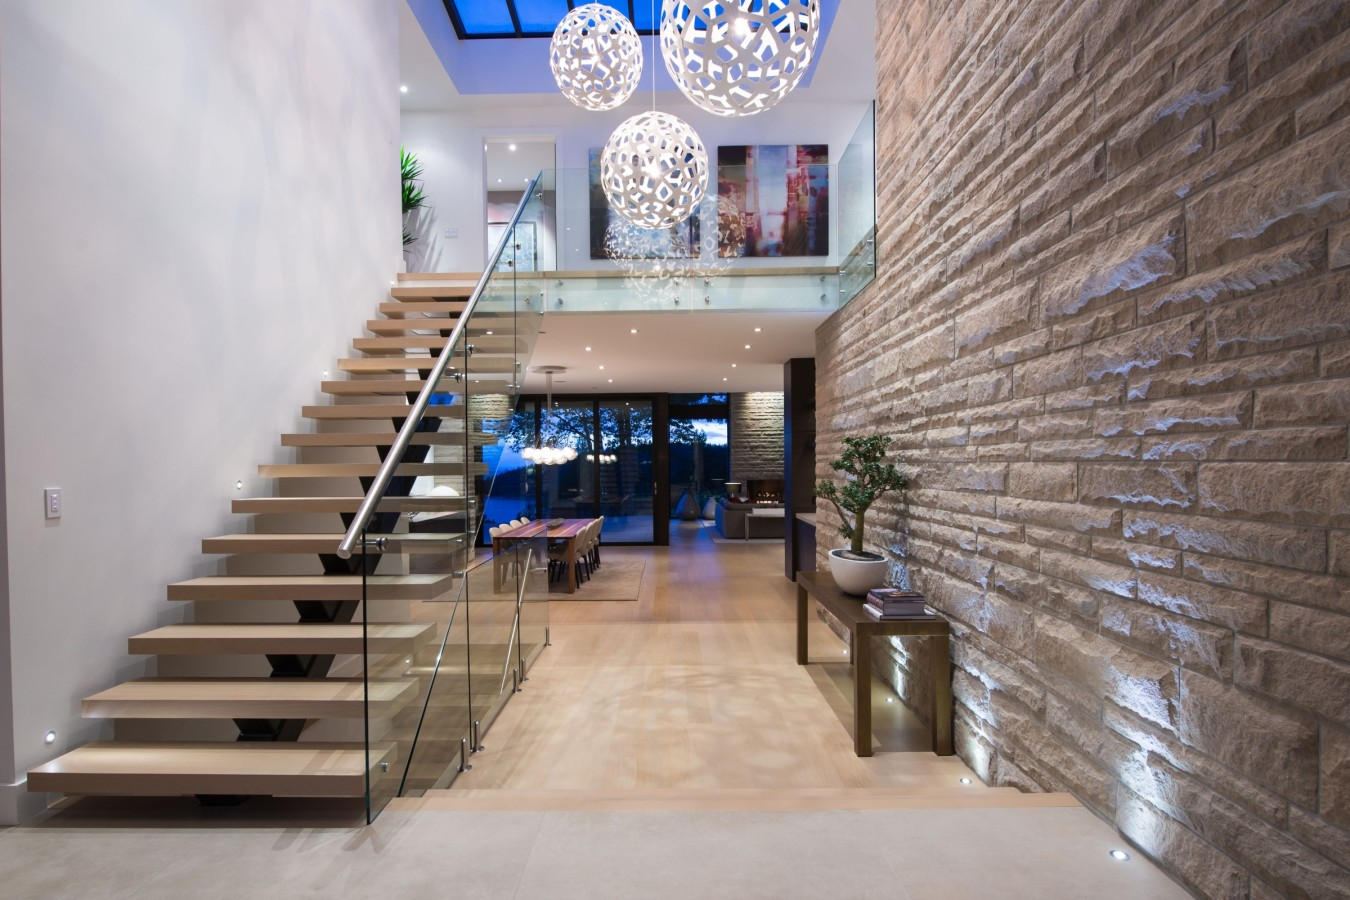 Burkehill Residence by Craig Chevalier and Raven Inside Interior Design   archartme